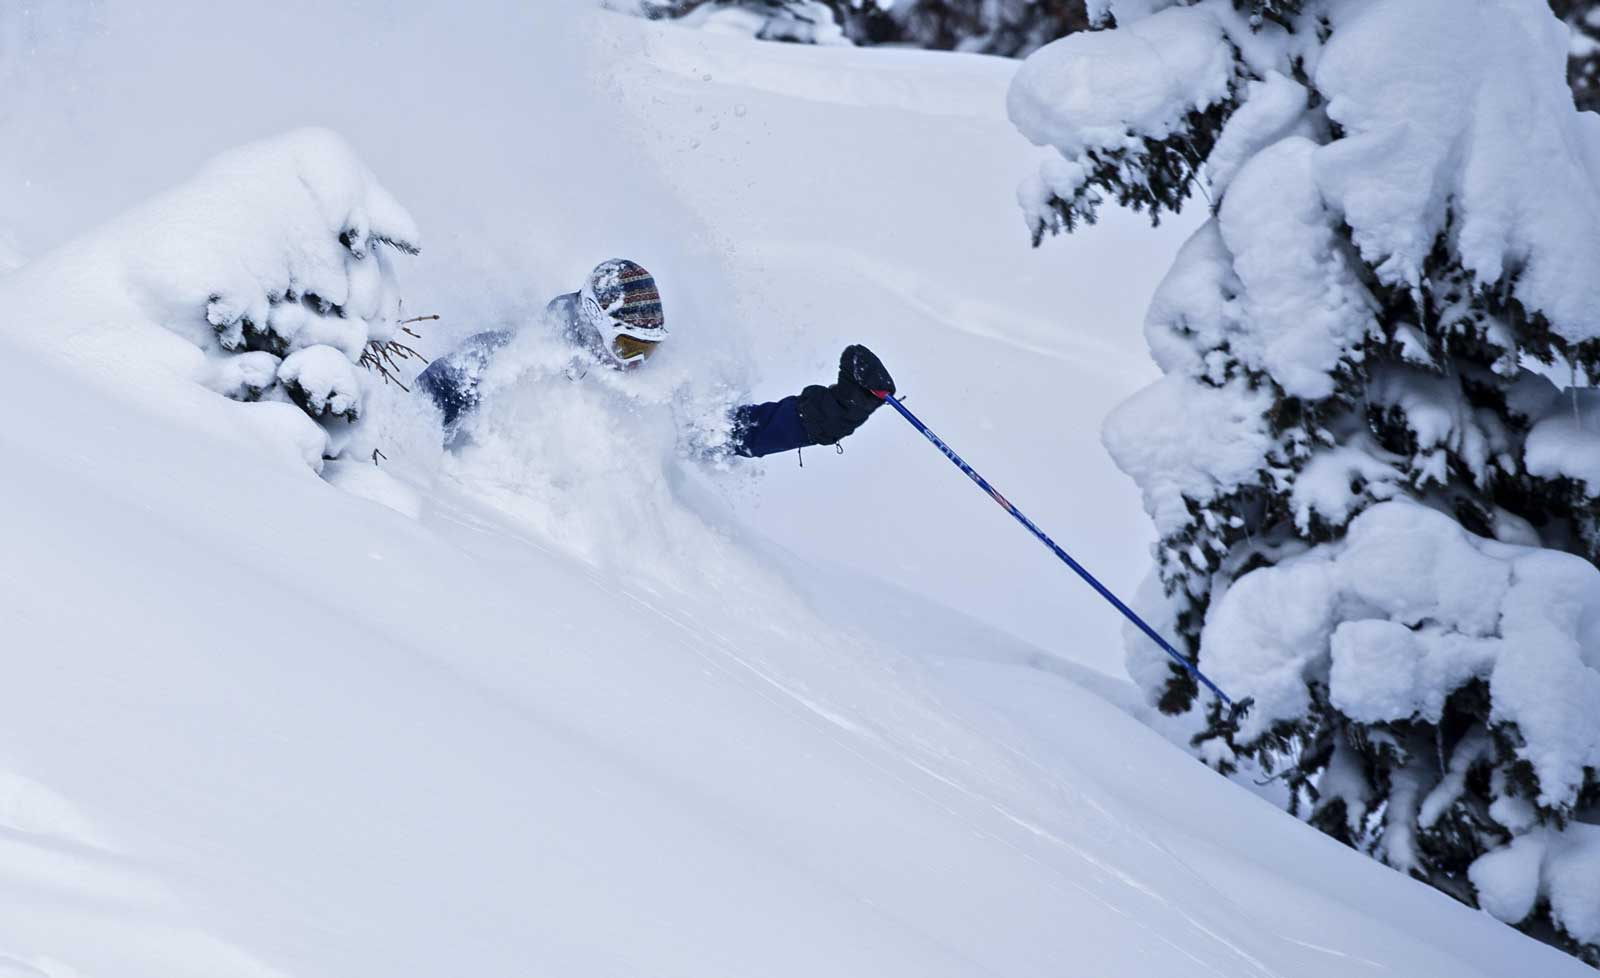 Powder skiing at Wolf Creek can be the stuff of legend.